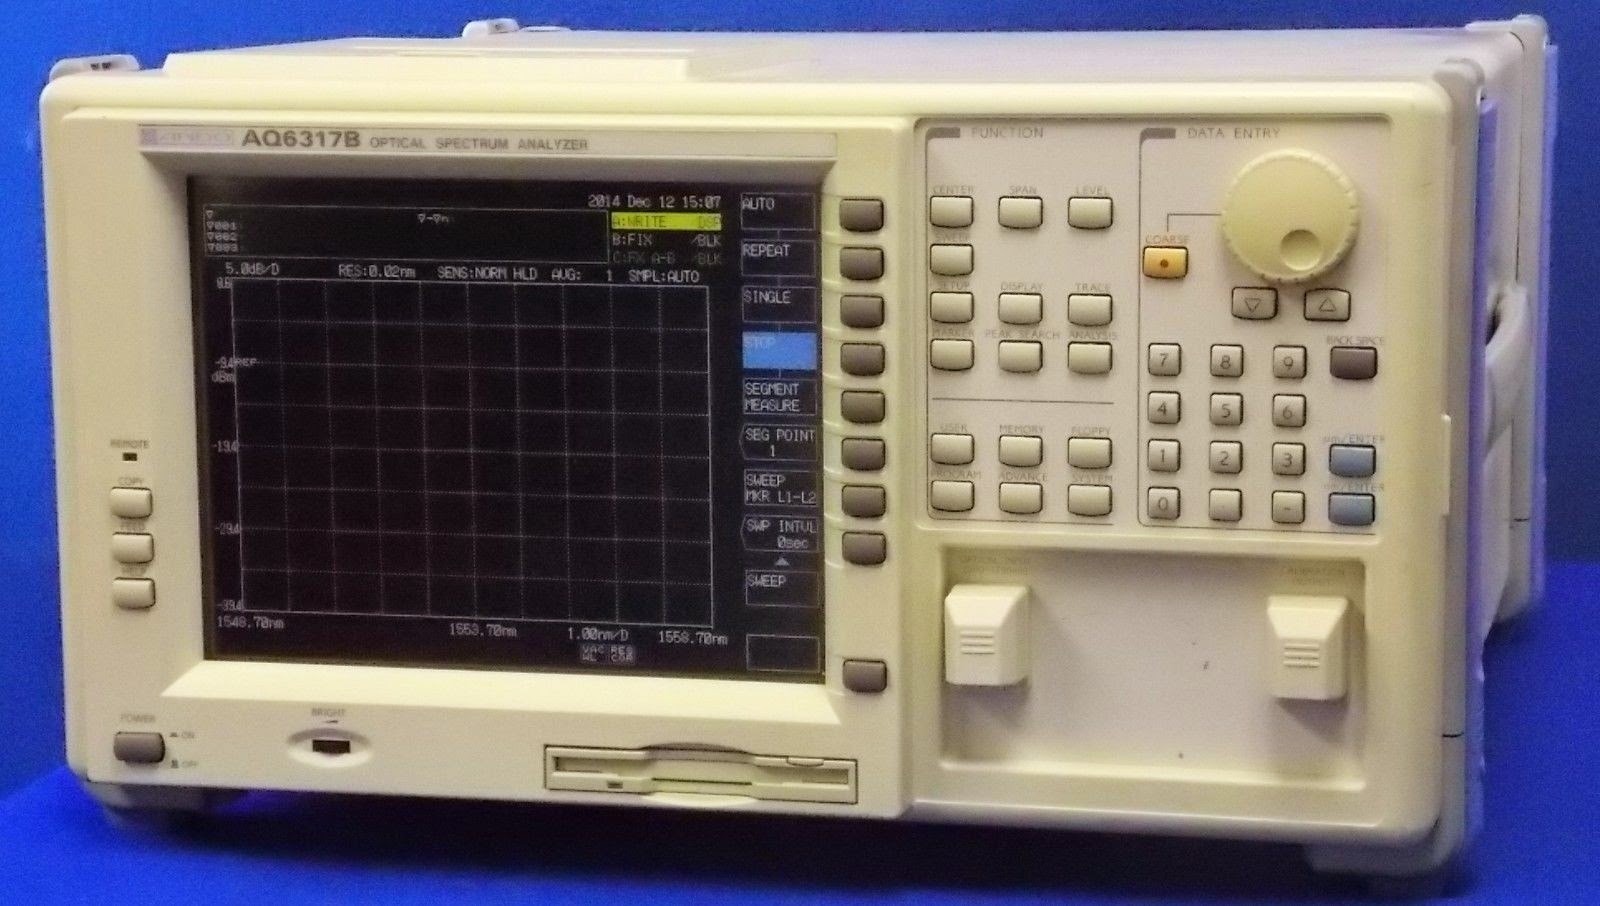 Ando Optical Spectrum Analyzer AQ6317B photo